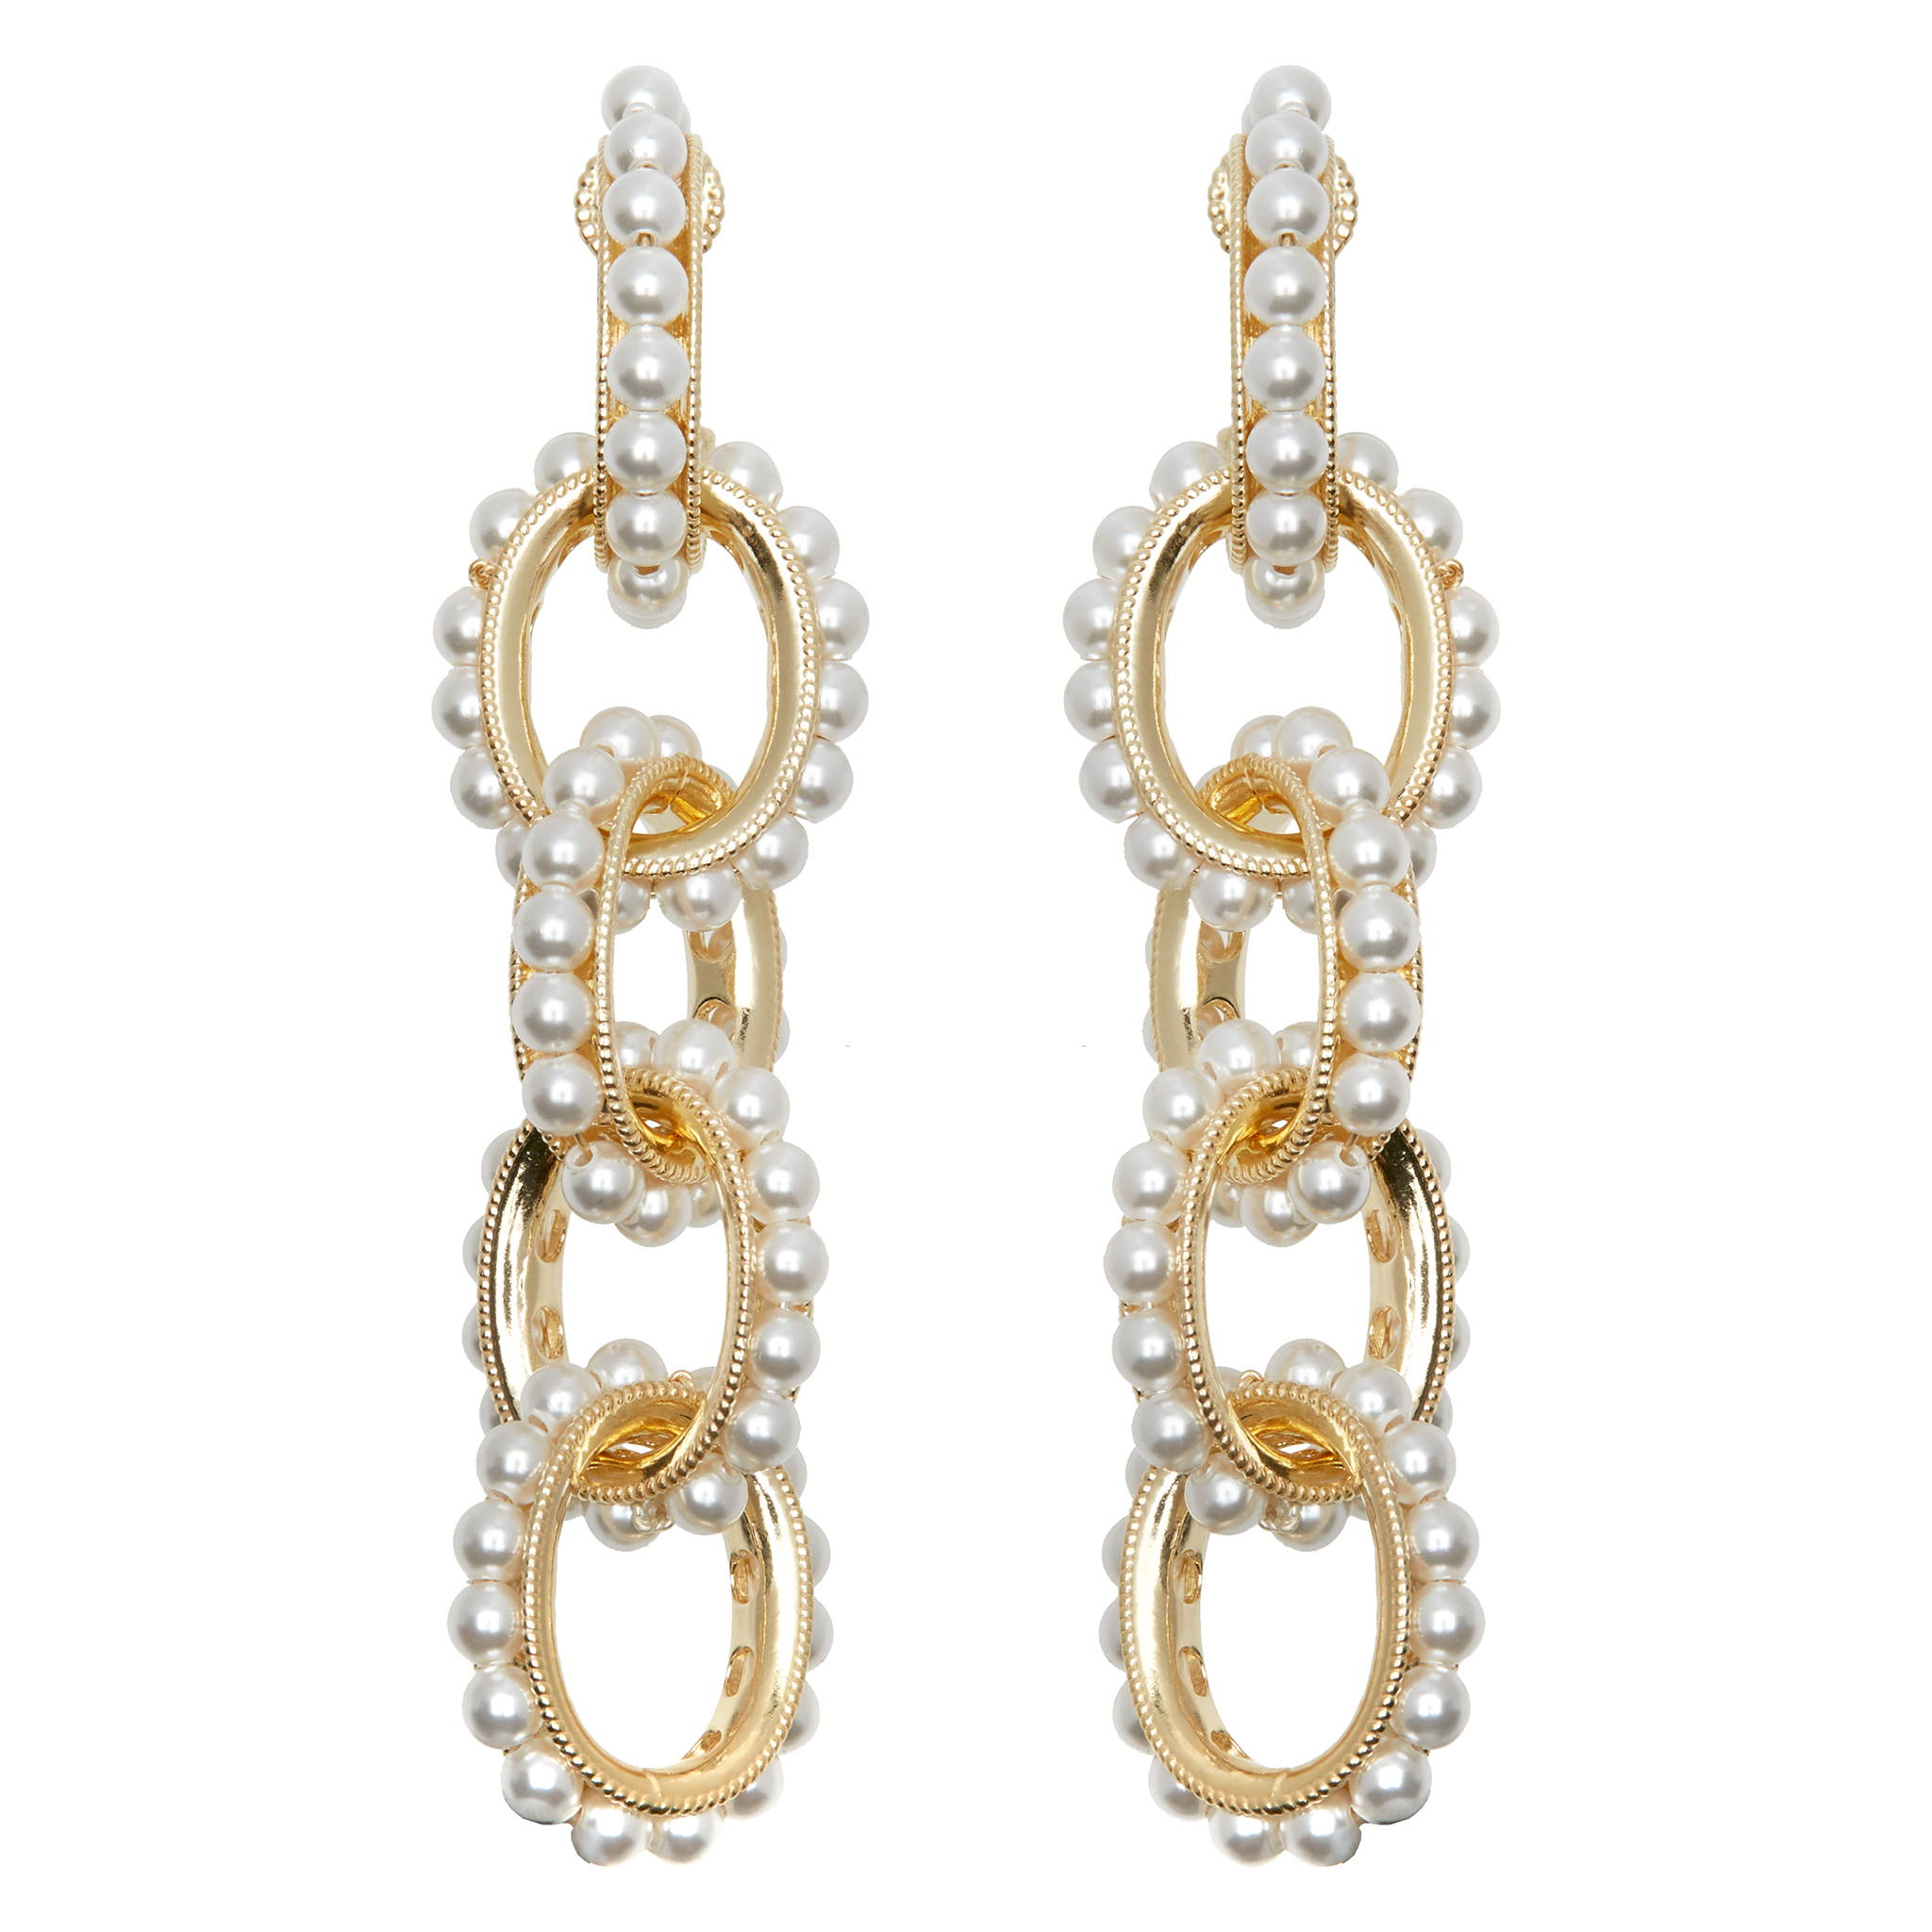 SORU JEWELLLERY PEARL MONDELLO EARRINGS, SORU GOLD AND PEARL LINK EARRINGS